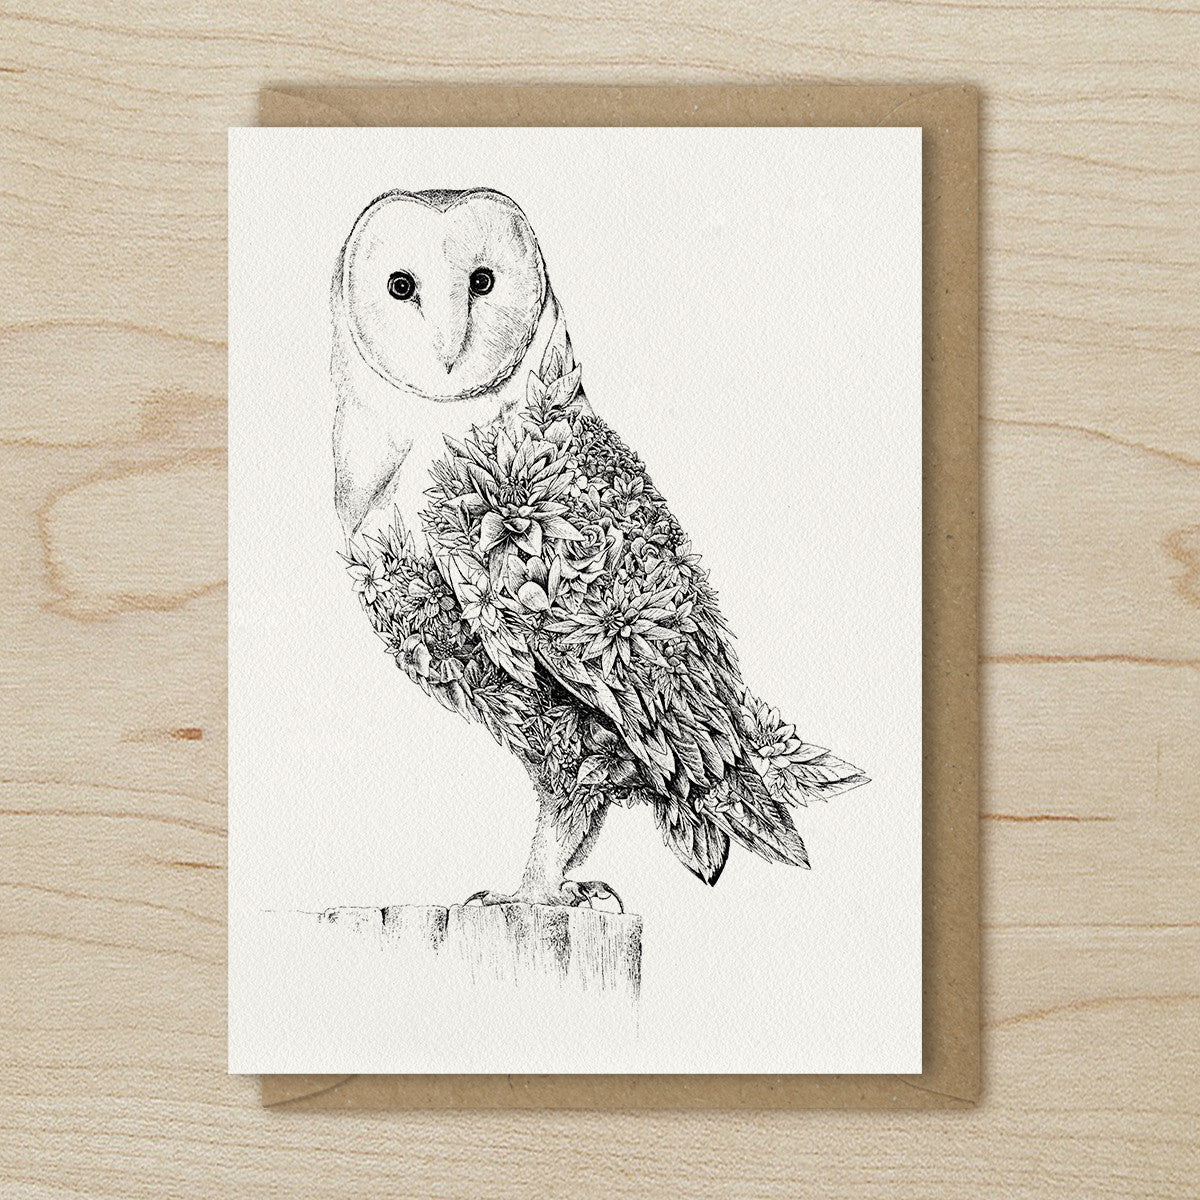 Barn owl greeting cards marini ferlazzo art for wildlife barn owl greeting cards m4hsunfo